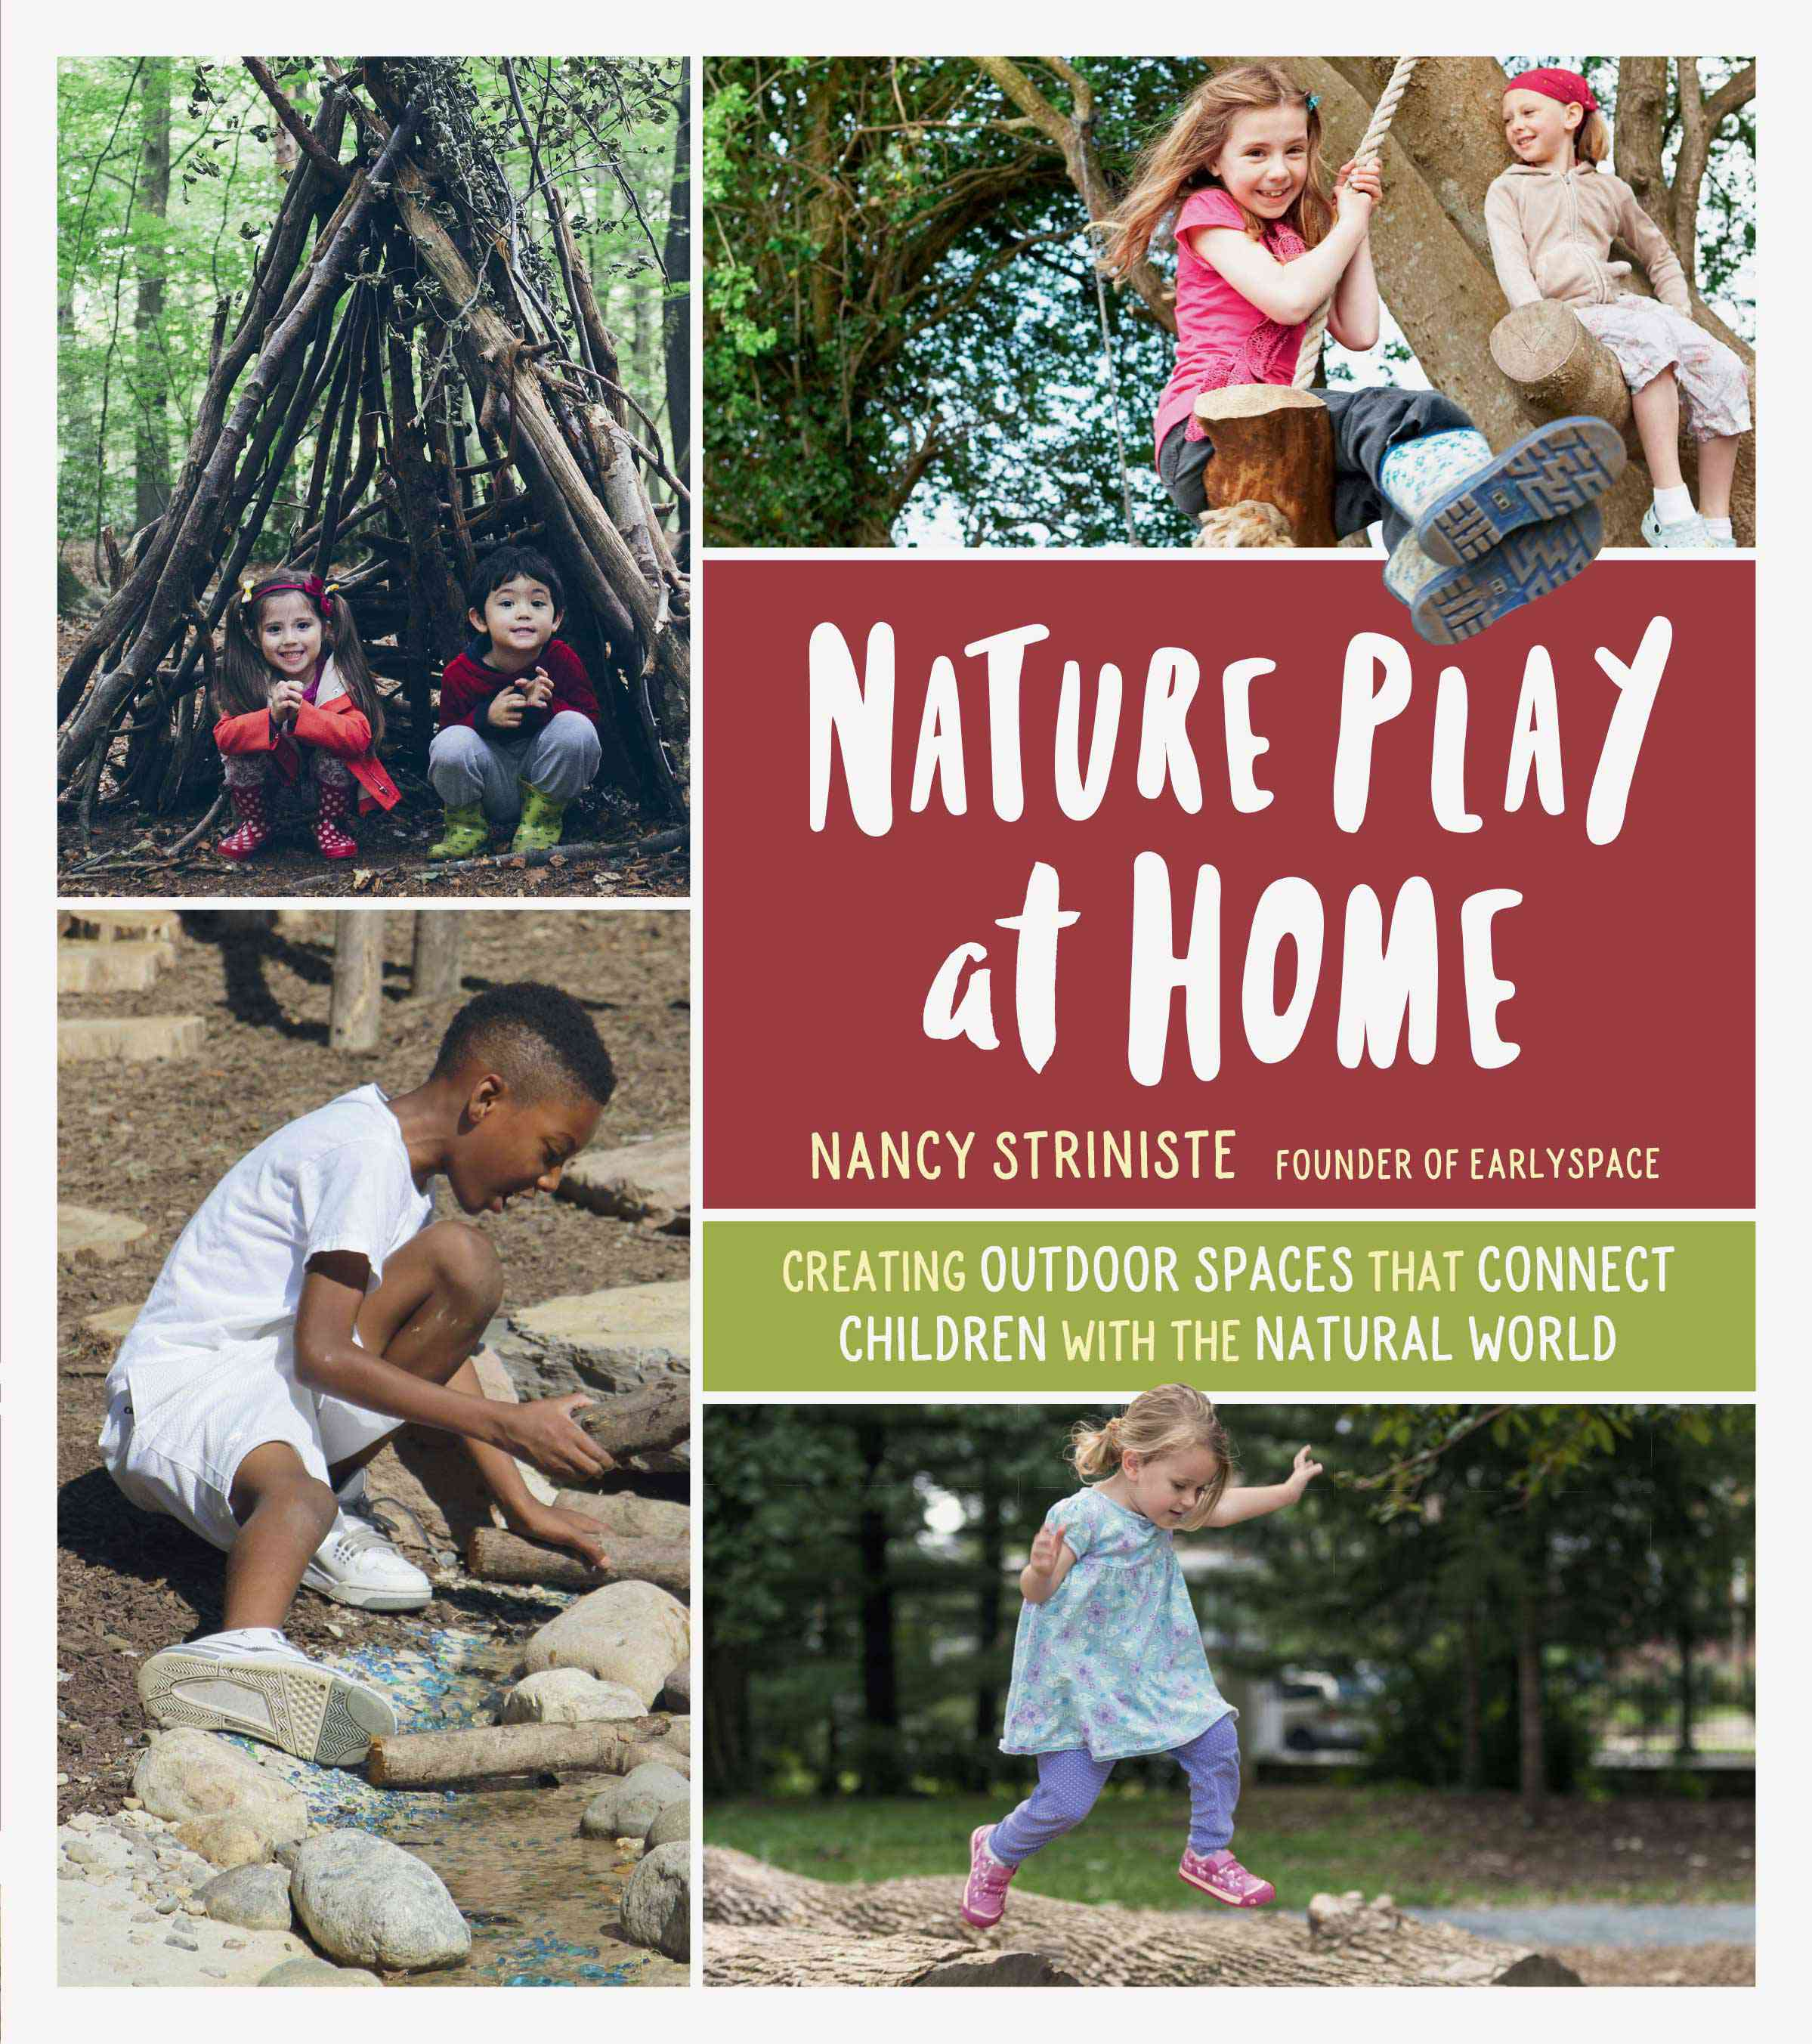 Nature Play at Home, book by Nancy Striniste